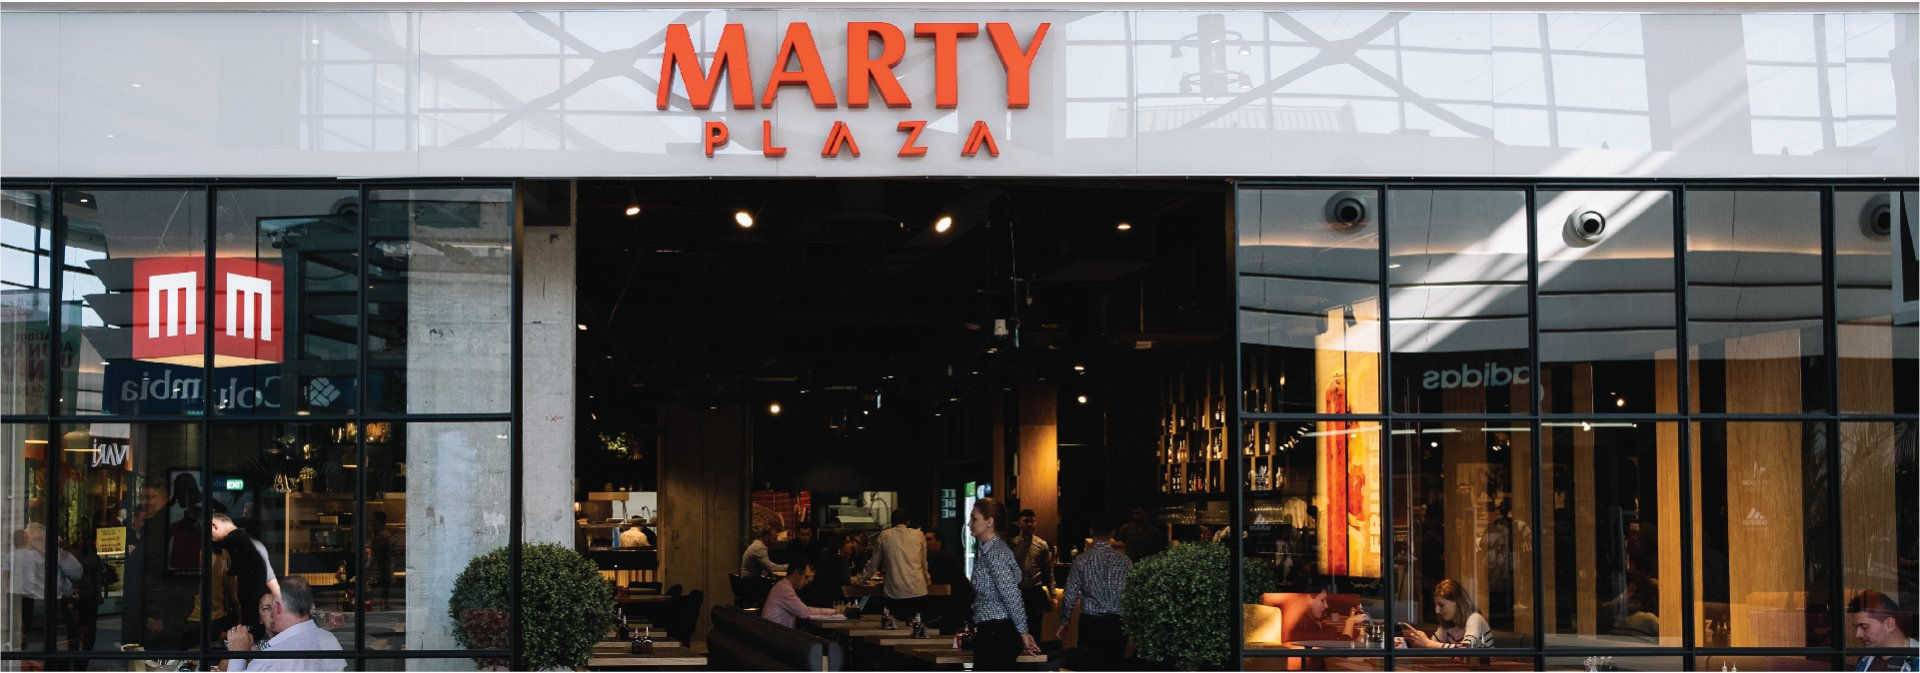 Marty Restaurants (Marty Plaza), Municipiul București, București